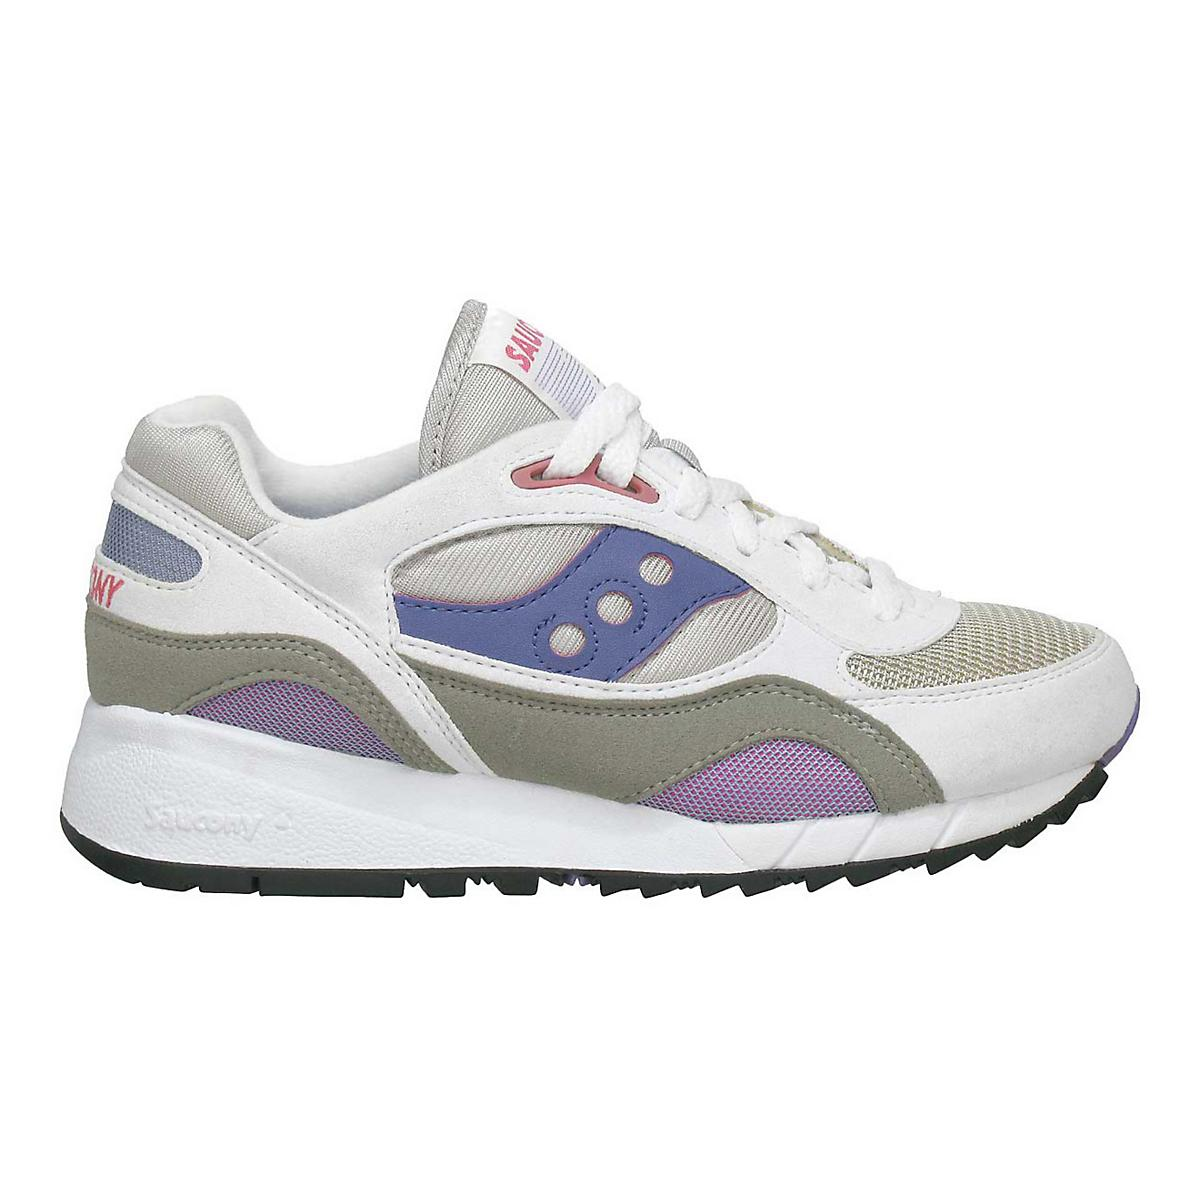 Womens Saucony Shadow 6000 Running Shoe at Road Runner Sports 6ded7f70d7